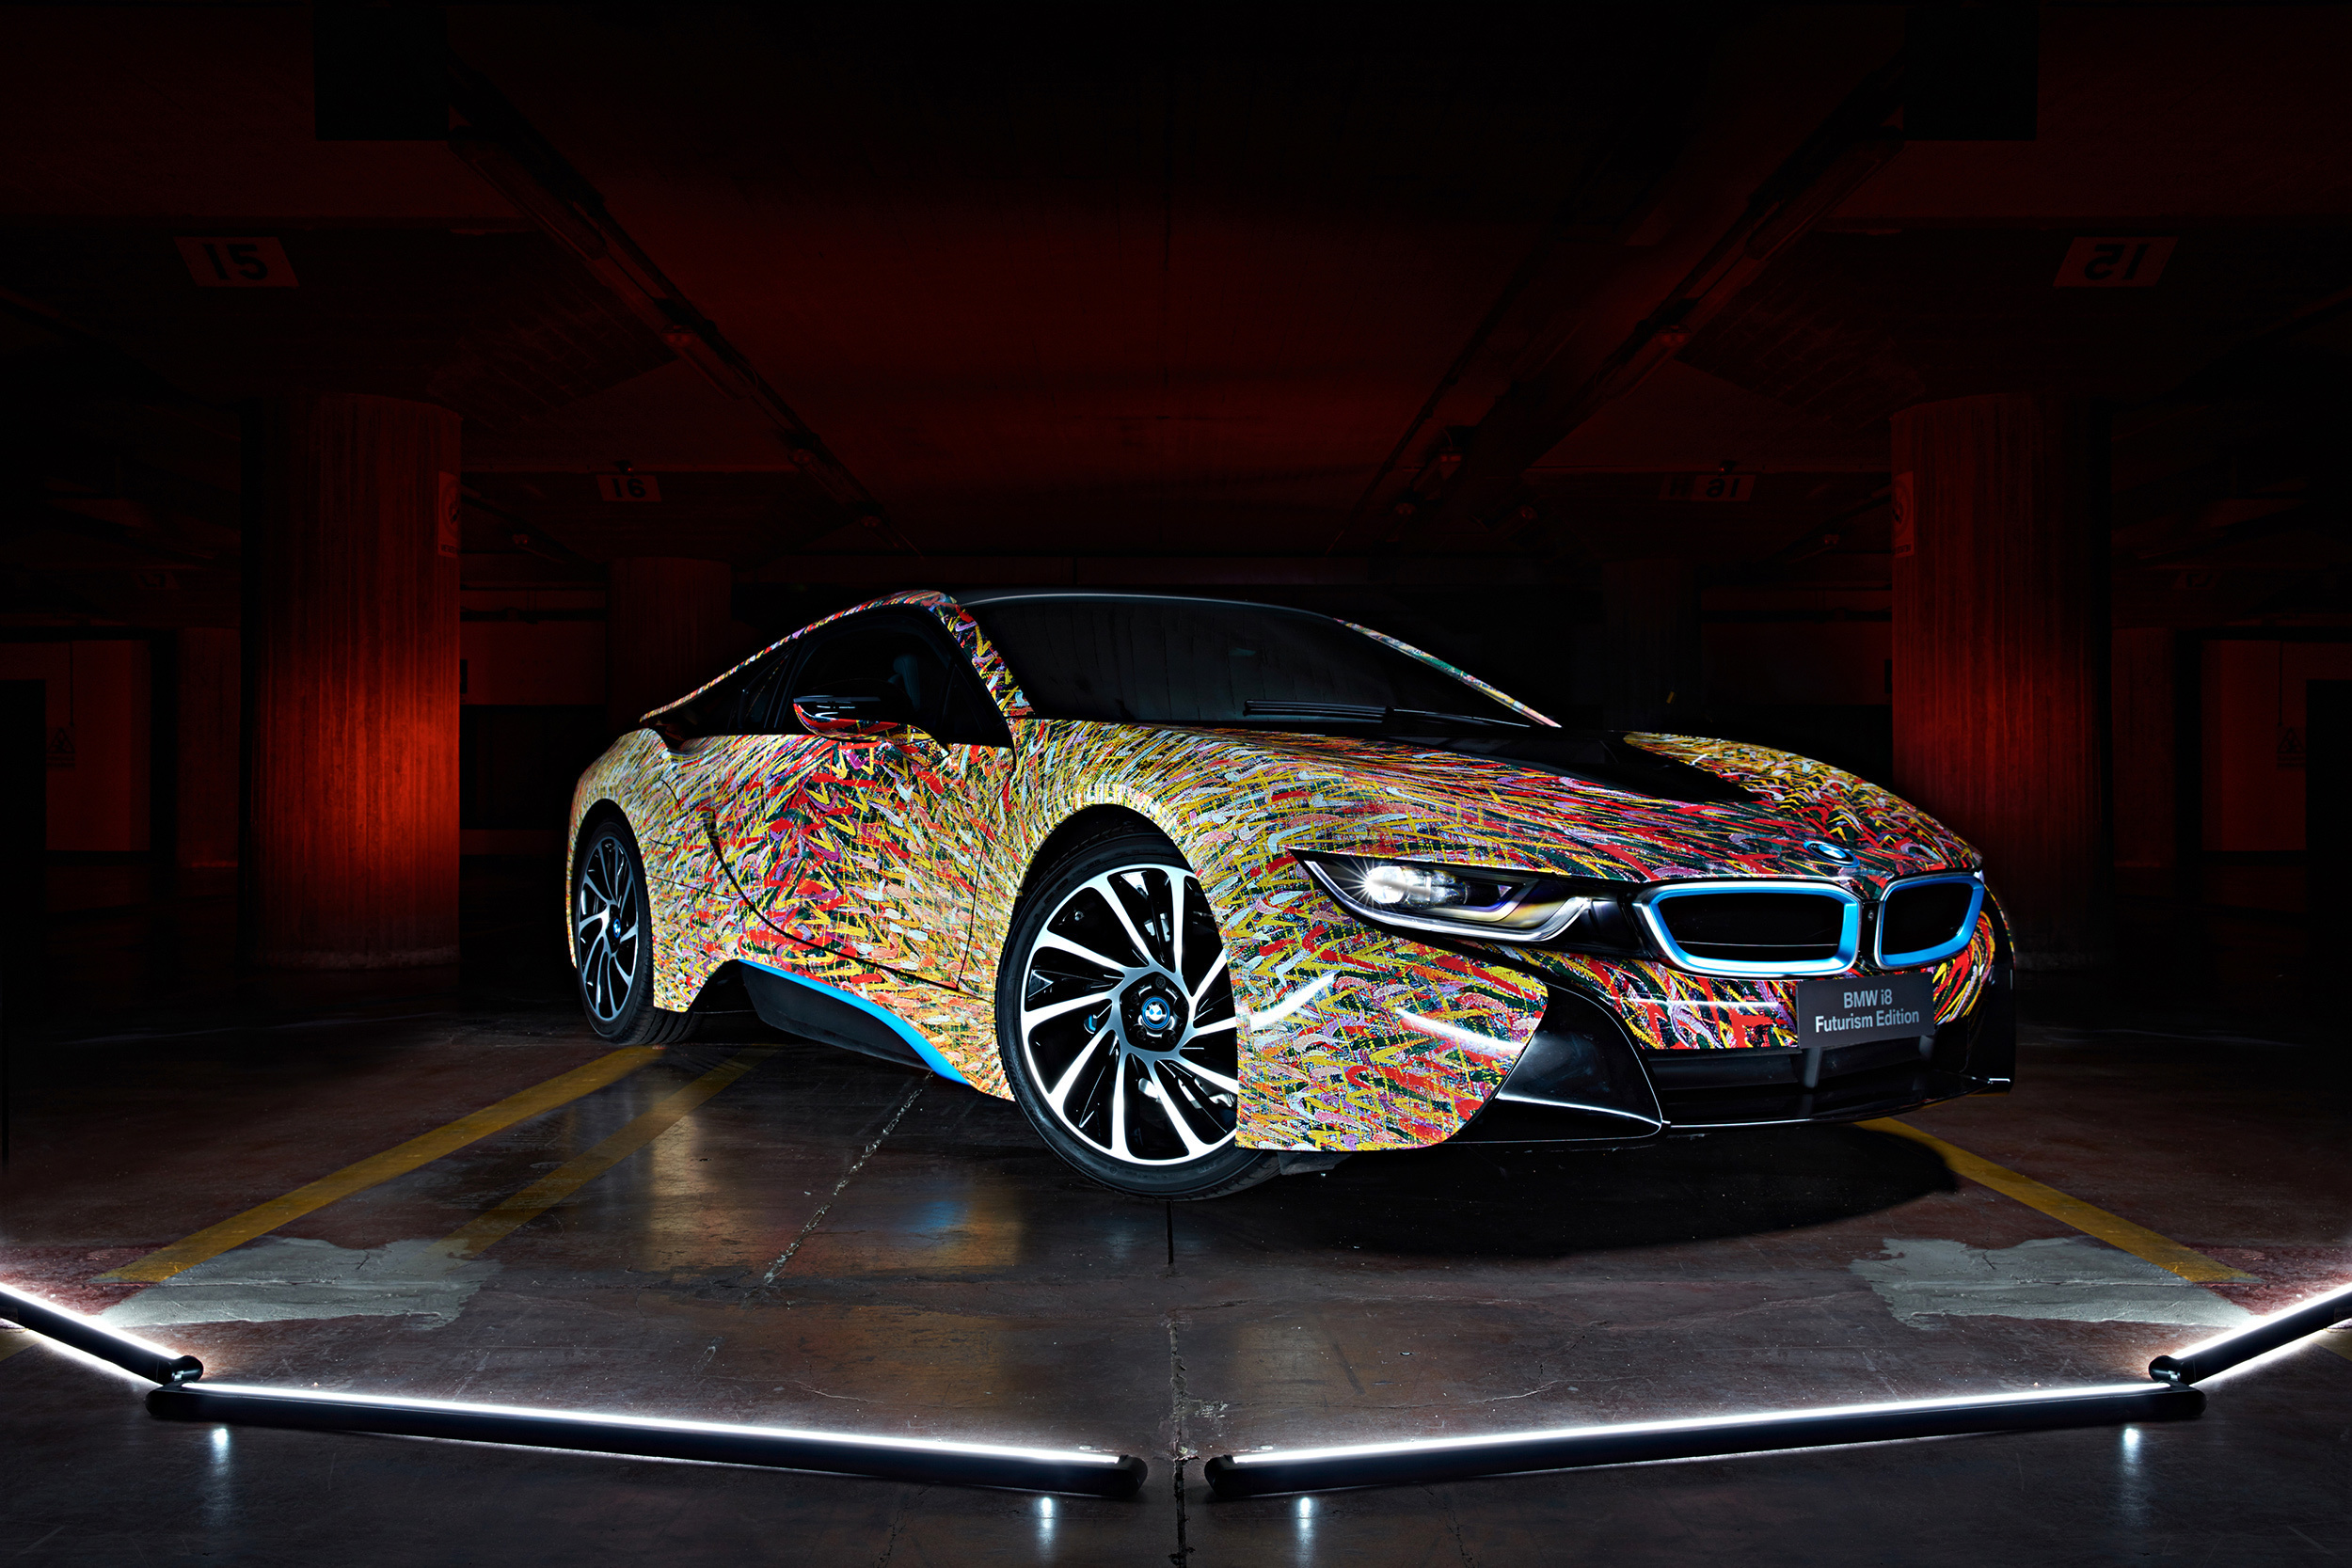 BMW I8 Futurism Edition Wallpapers